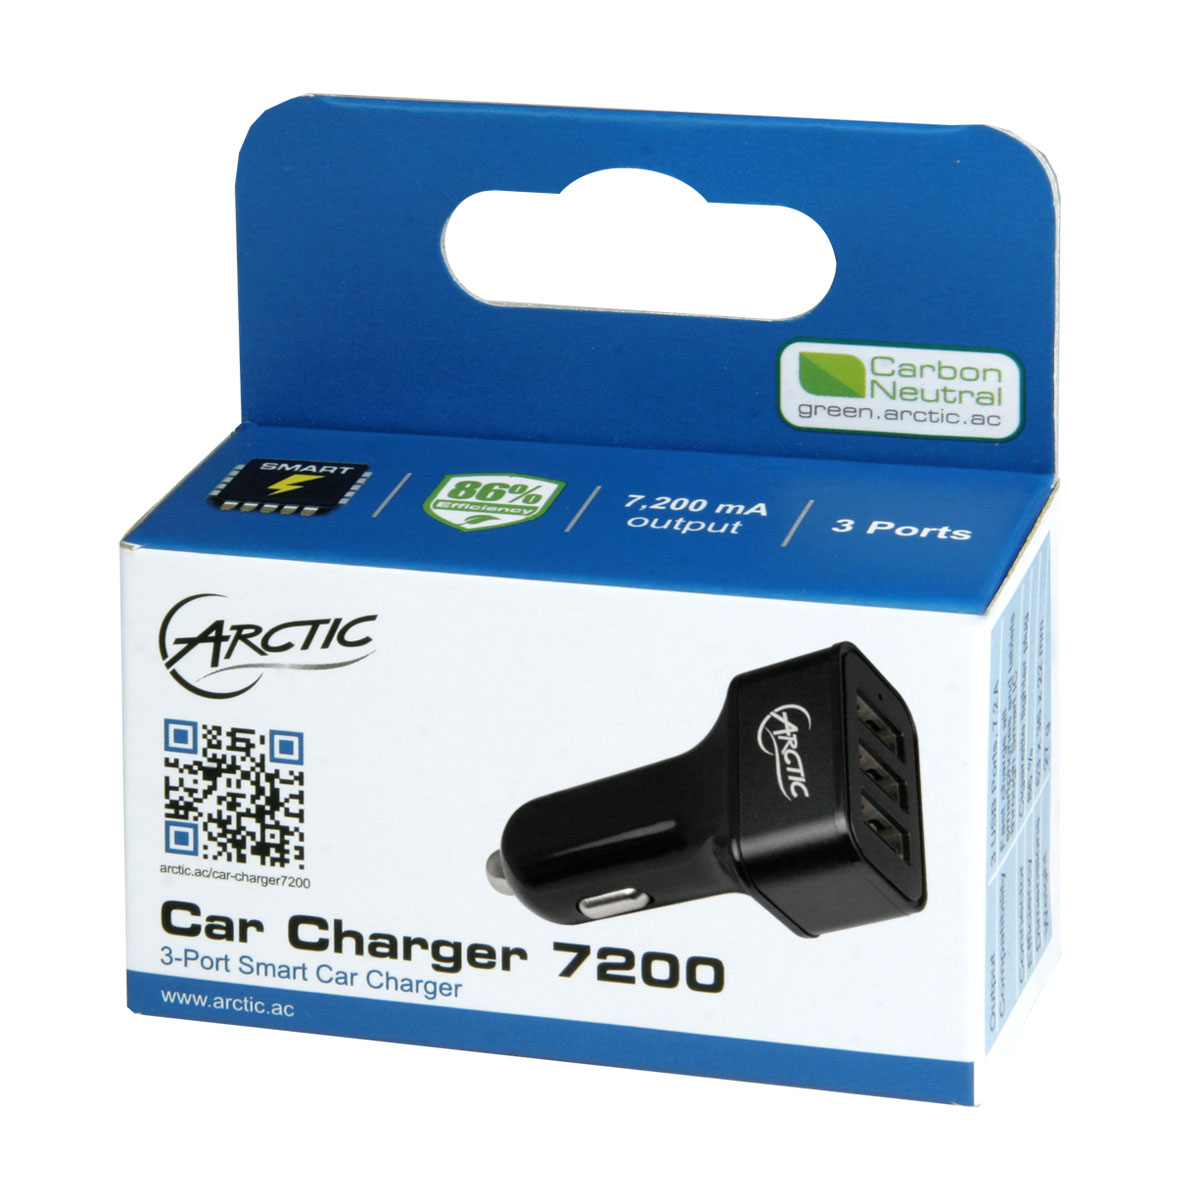 Car Charger 7200